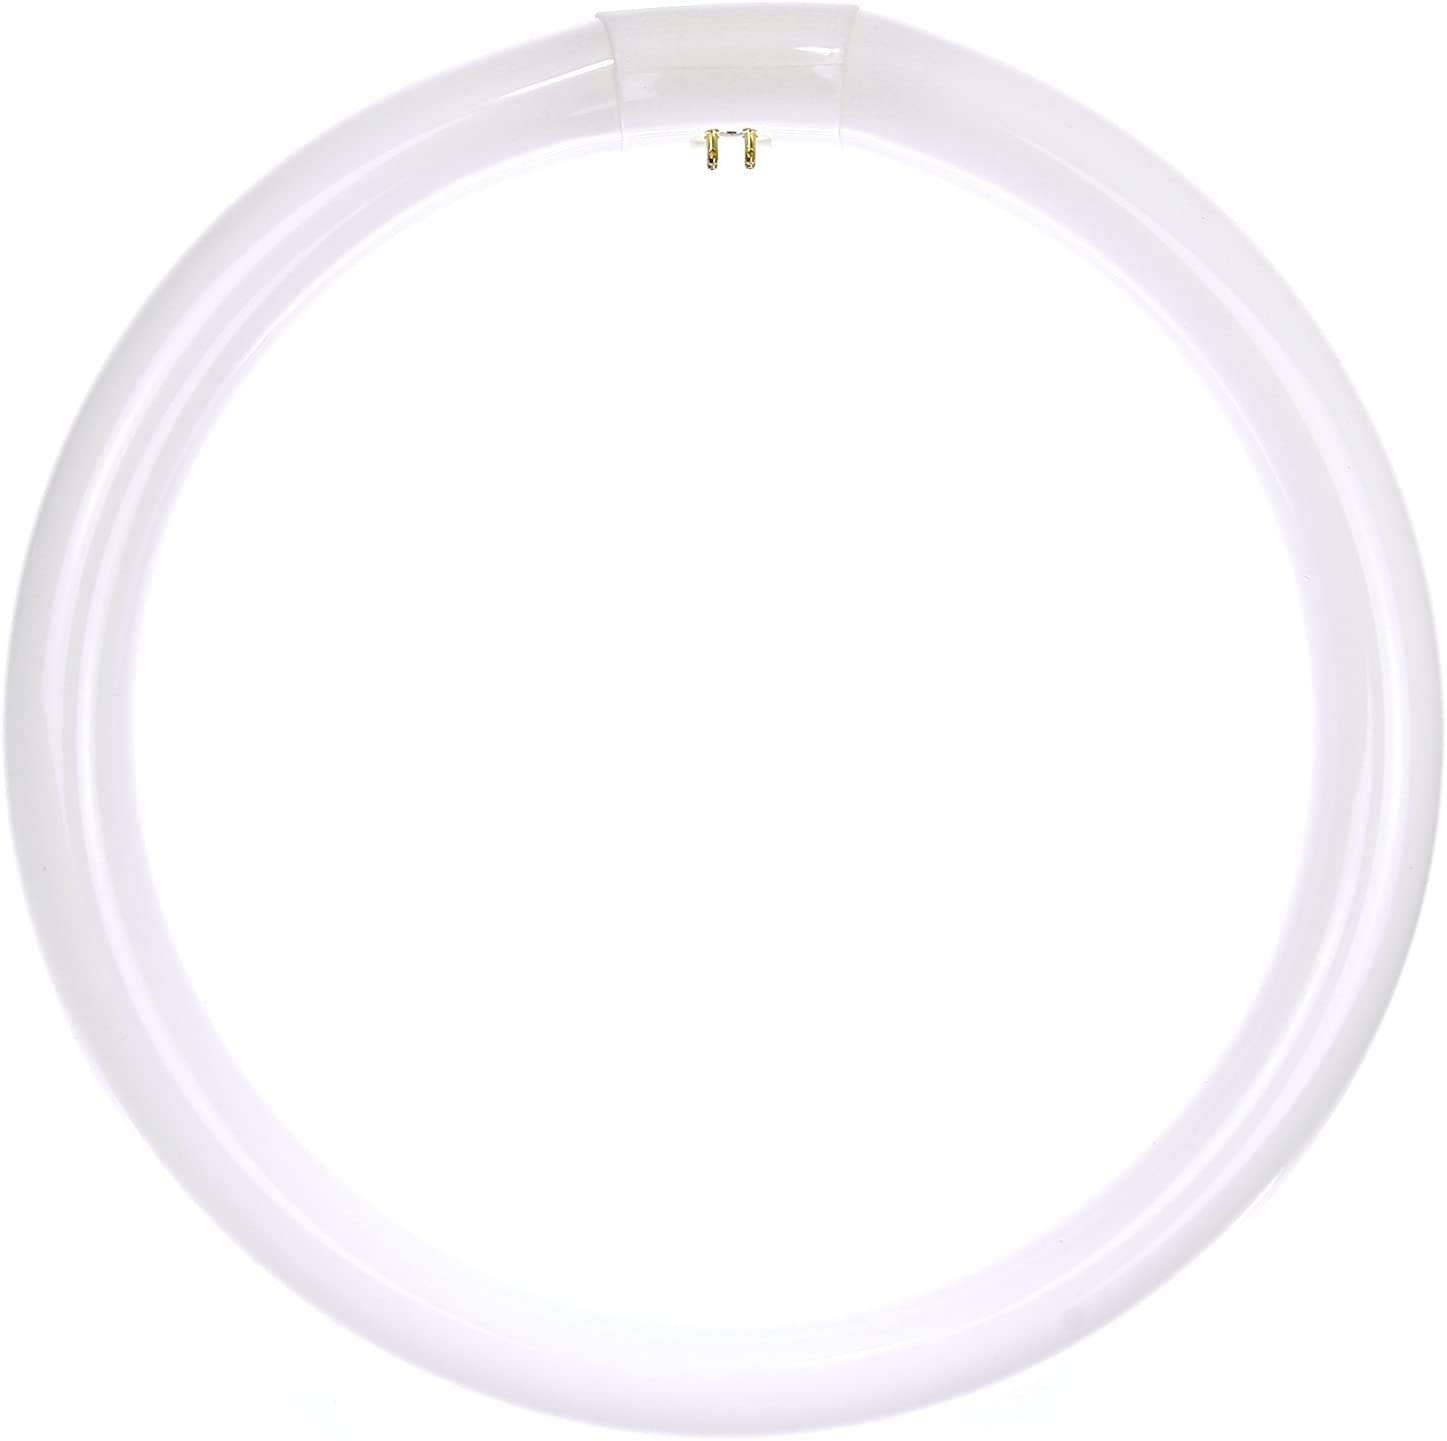 Sunlite 41315-SU FC12T9/CW Circline Fluorescent Lamps, 12-Inch Size, 32 Watts, 2100 Lumens, 4-Pin Base (G10q), 10,000 Life Hours, 41K-Cool White